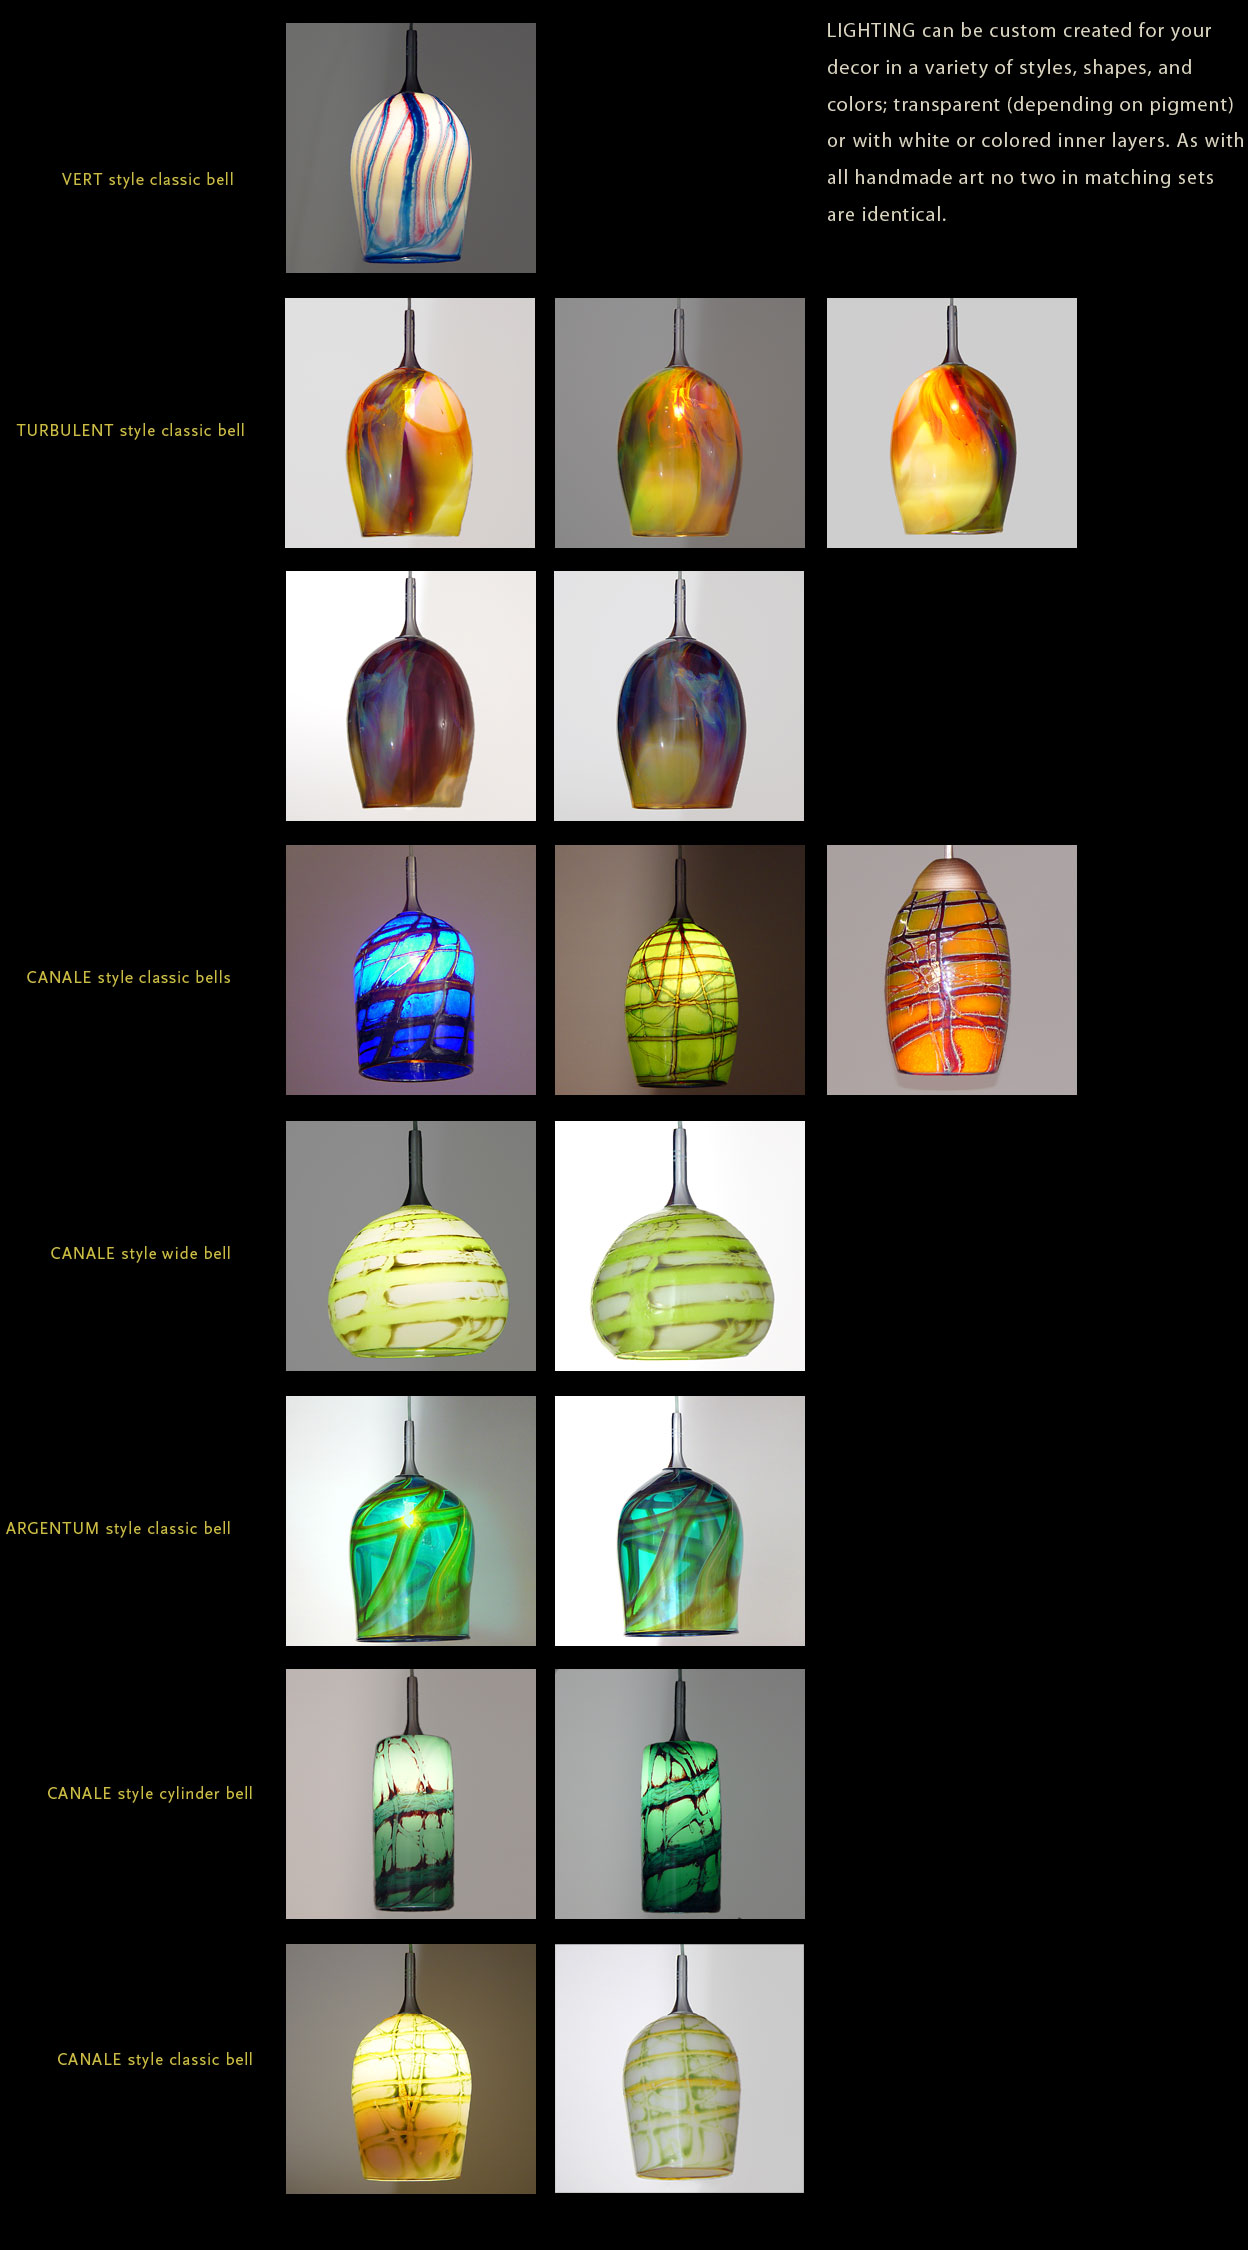 LIGHTING can be custom created for your decor in a variety of styles, shapes, and colors; transparent (depending on pigment) or with white or colored inner layers. As with all handmade art no two in matching sets are identical.